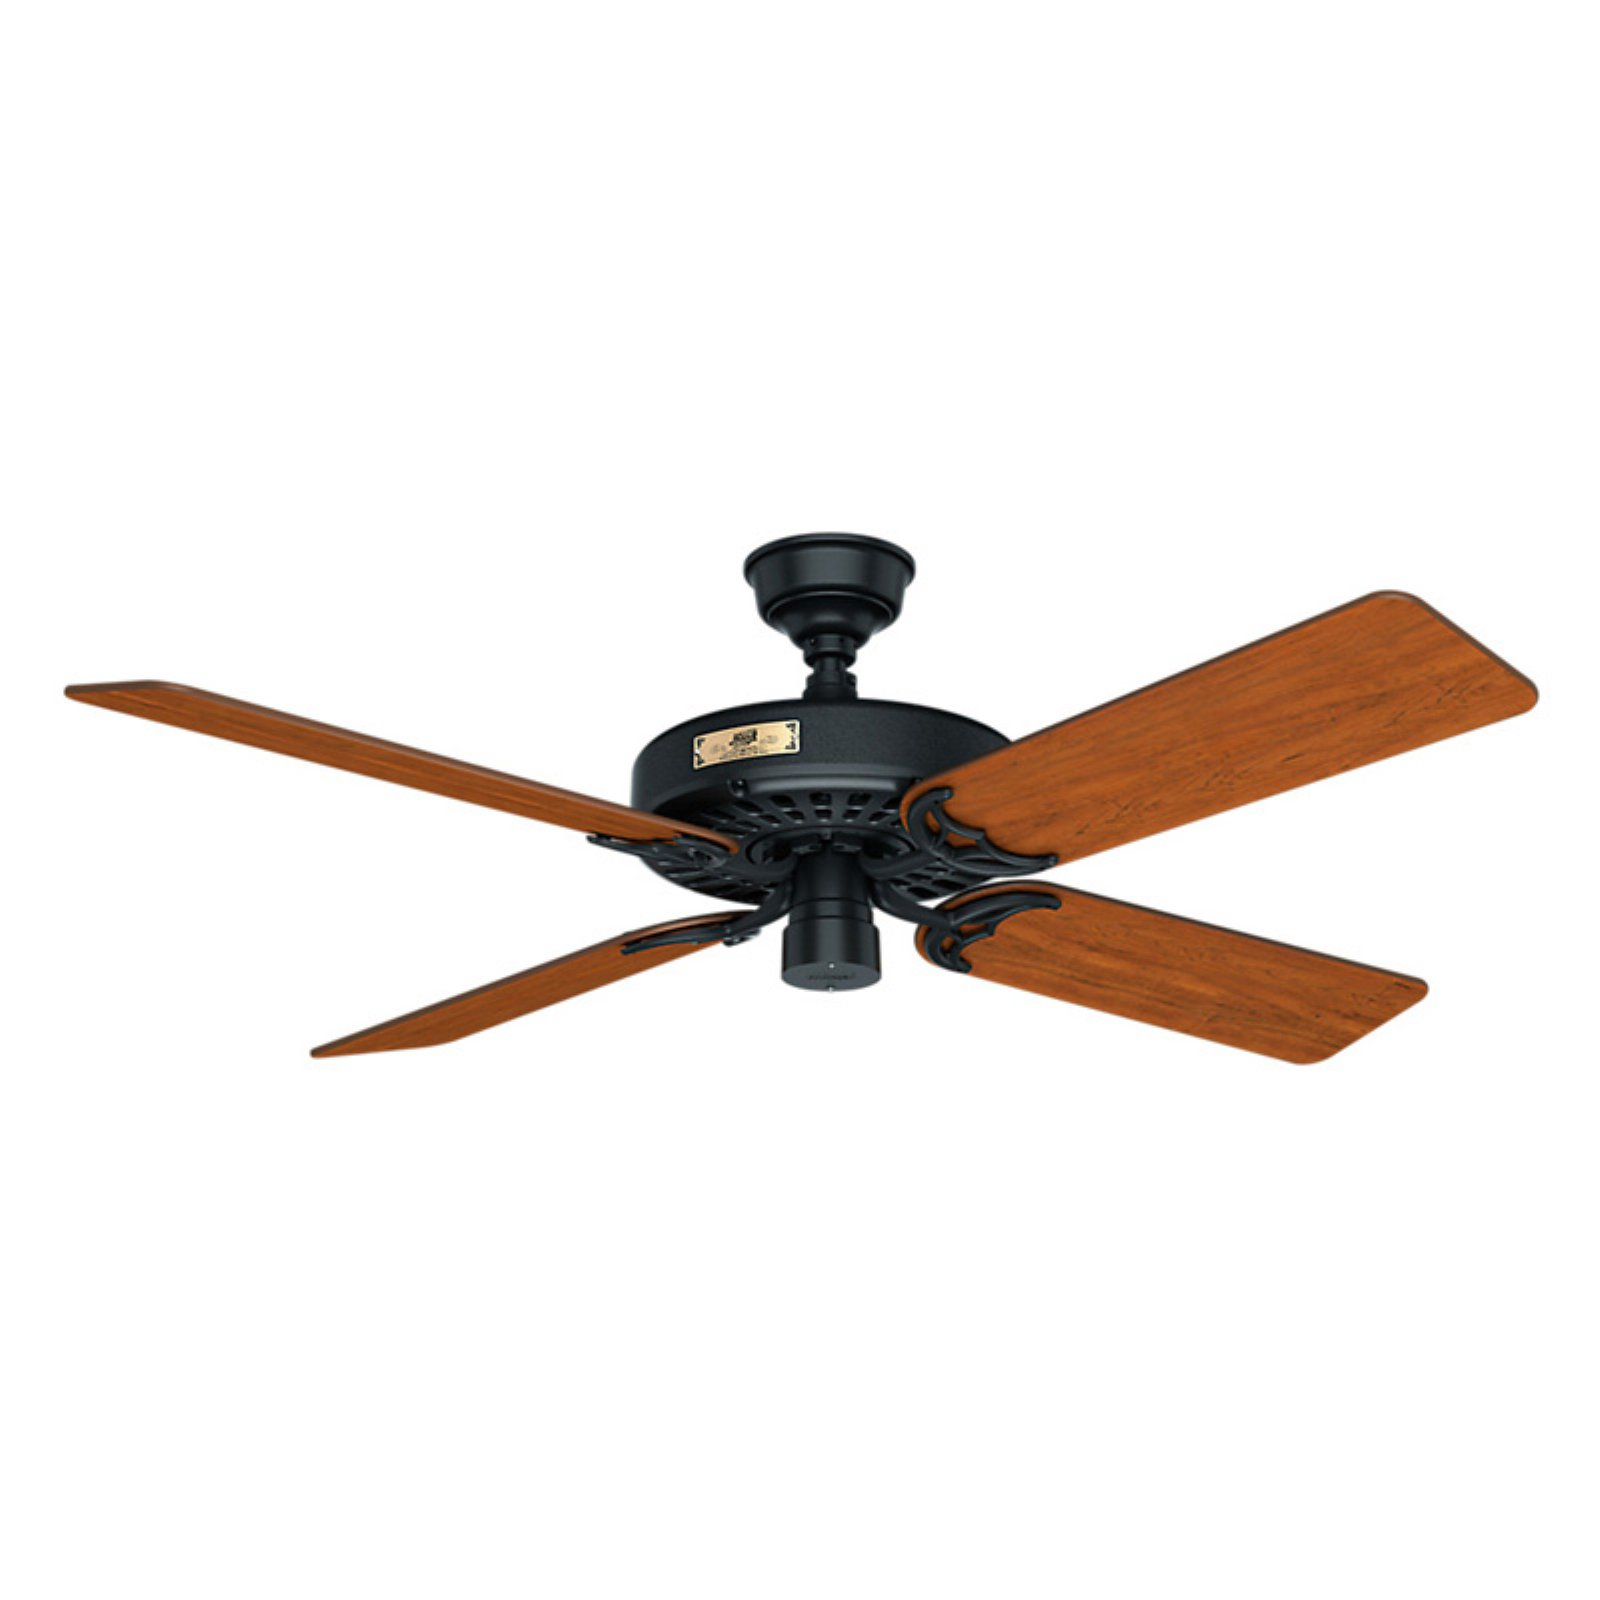 Hunter Original 52 in. Indoor/Outdoor Ceiling Fan with Remote